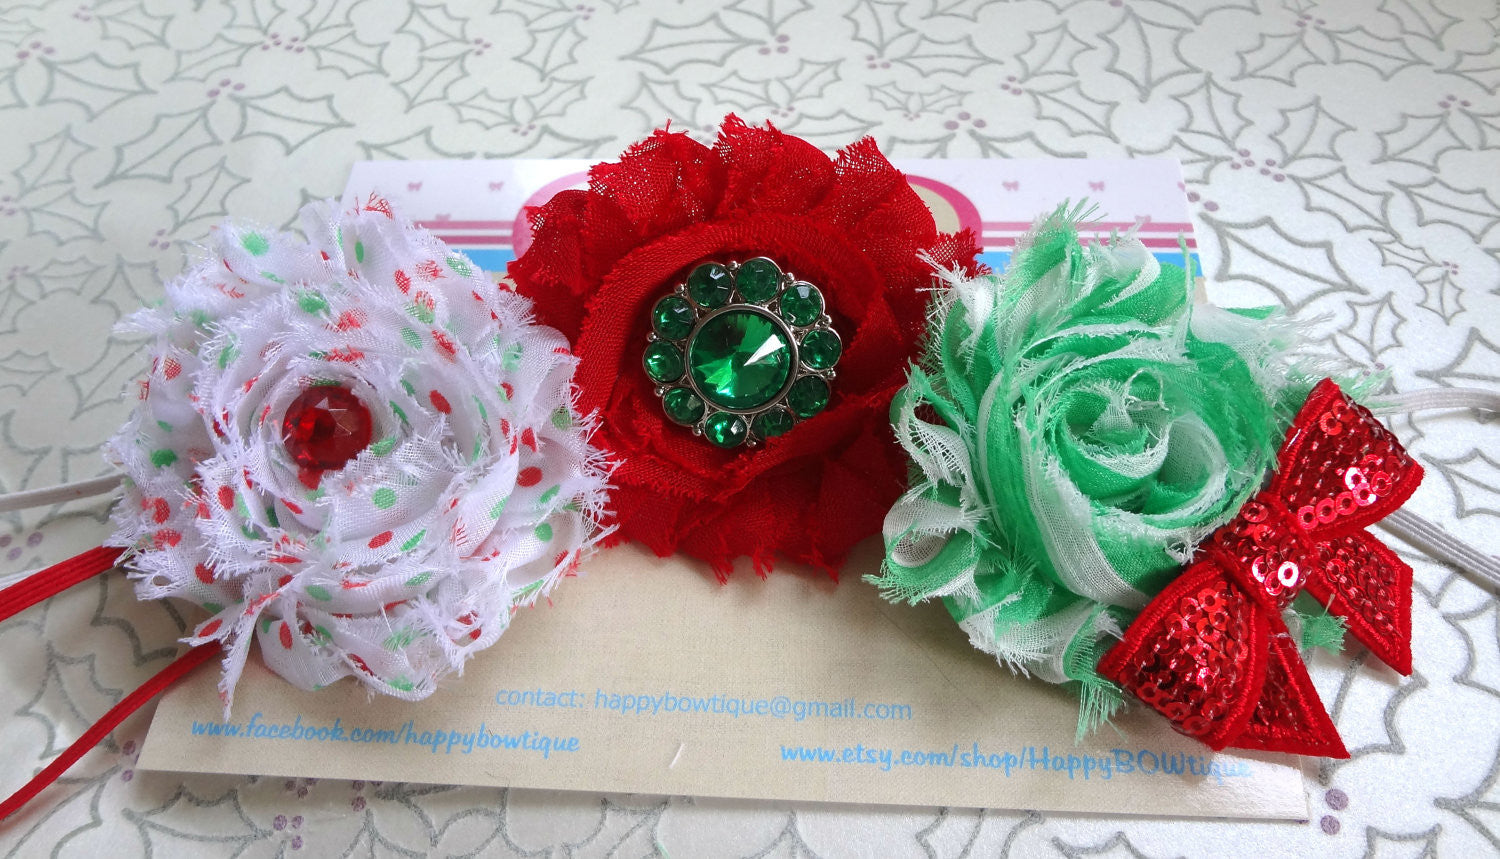 Christmas Headband For Baby Girl.Rio Shabby Christmas Headband Sets Baby 1st Christmas Baby Girls Headband